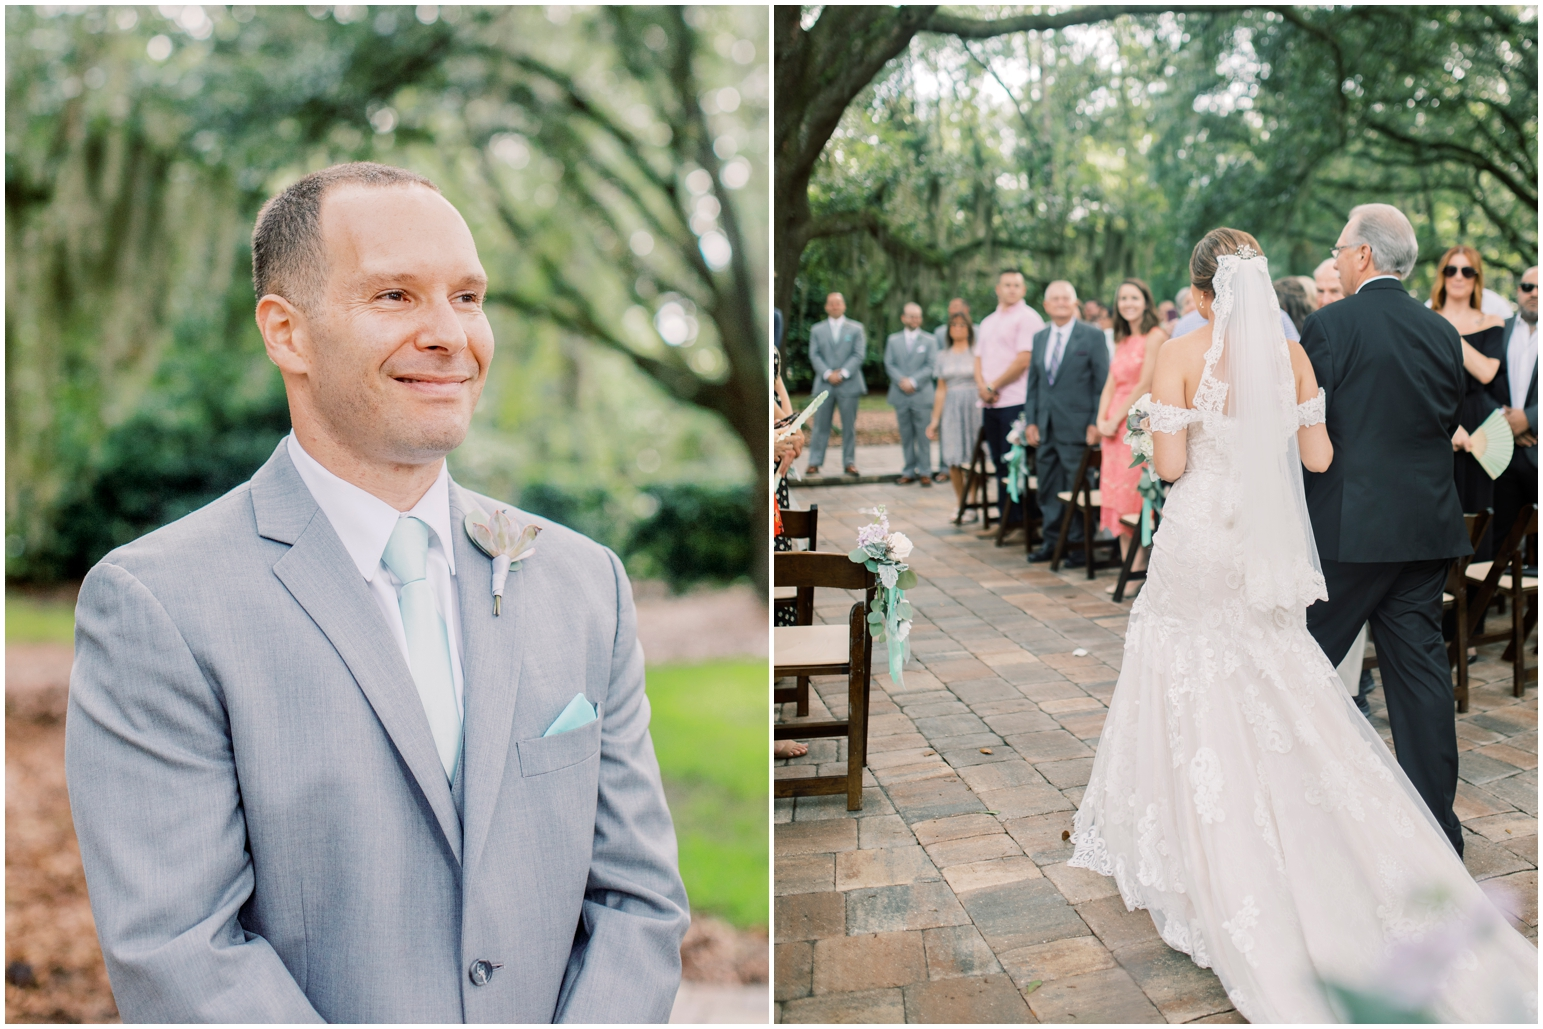 Lisa Silva Photography- Jacksonville, St Augustine, Fernandina Beach, Amelia Island, Ponte Vedra Beach, North East Florida Fine Art Film Photographer- Ashley and Shawn's wedding at bowing oaks plantation_0060.jpg